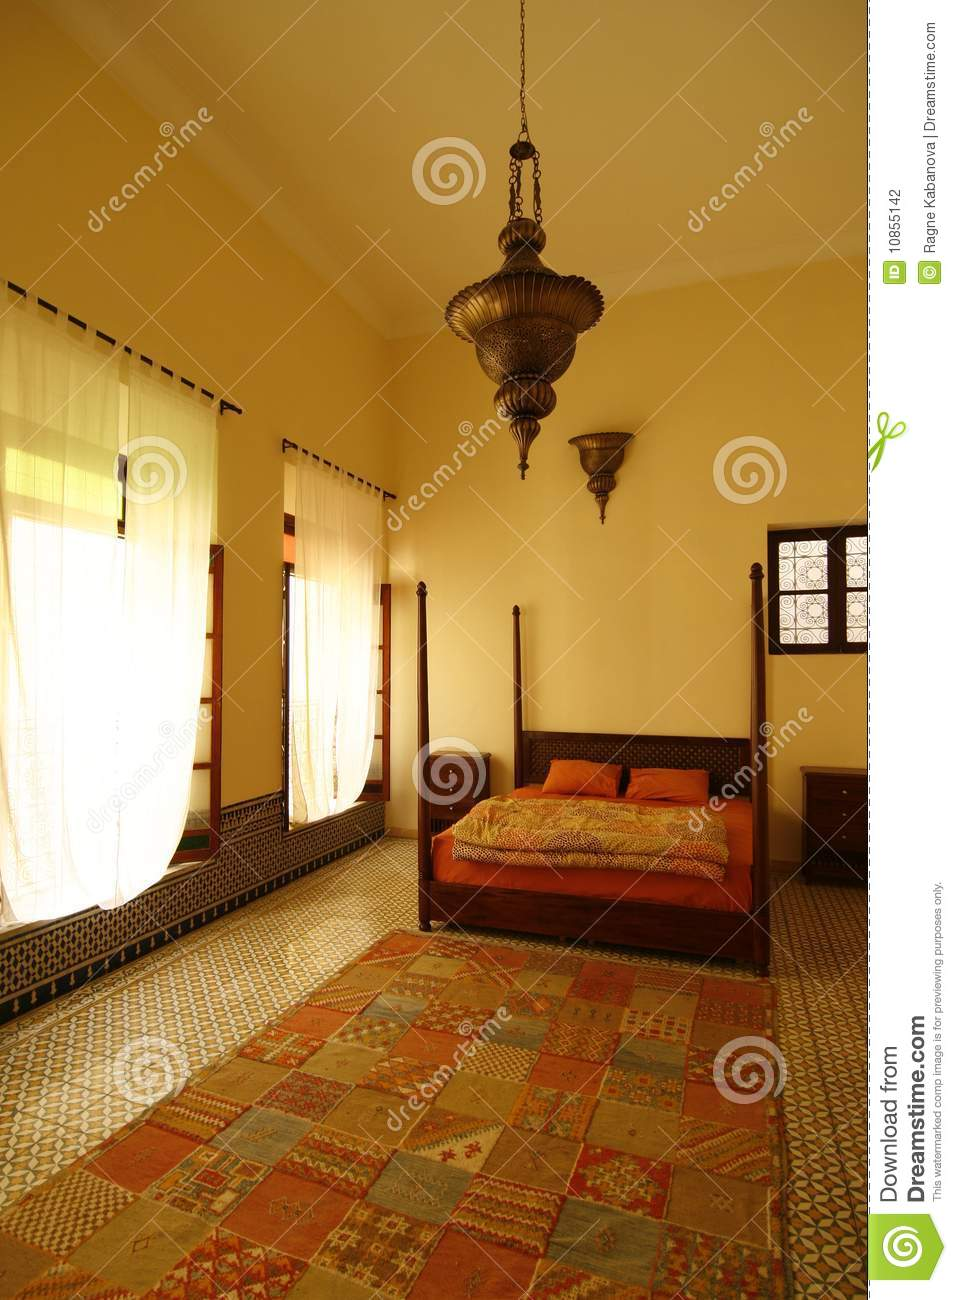 belle chambre coucher arabe authentique maroc photographie stock image 10855142. Black Bedroom Furniture Sets. Home Design Ideas